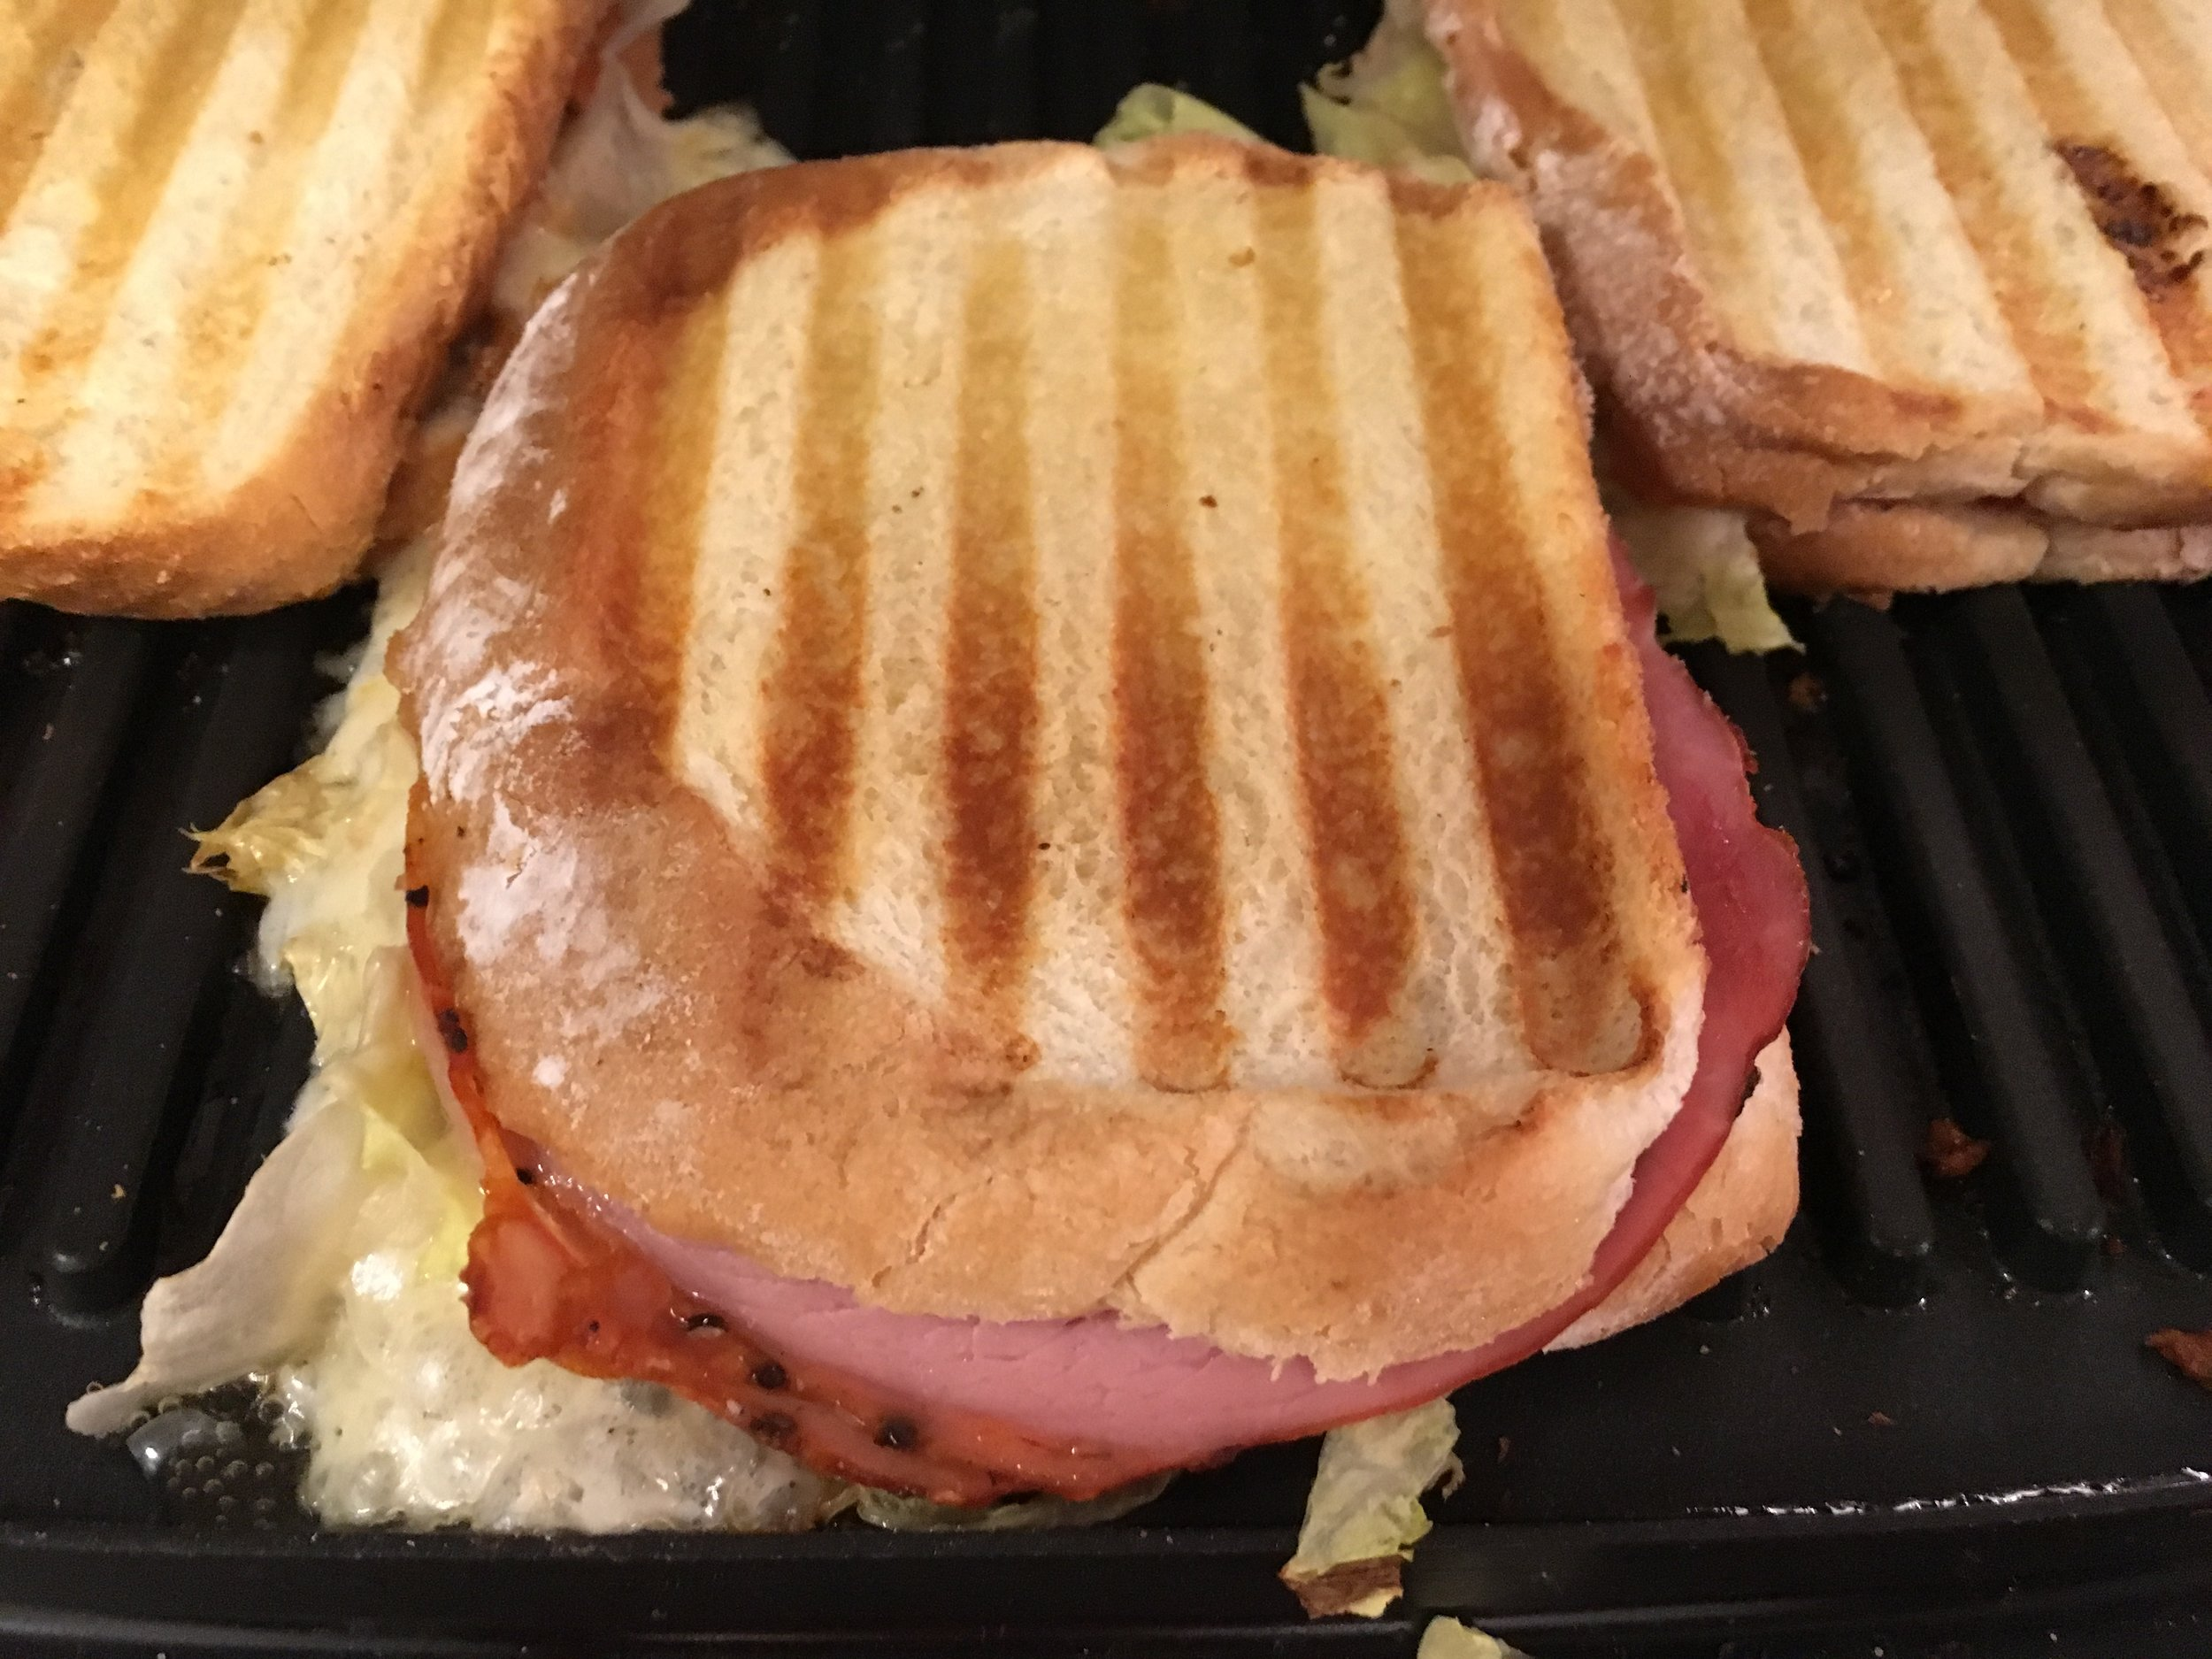 Grilled Cheese with Pastrami